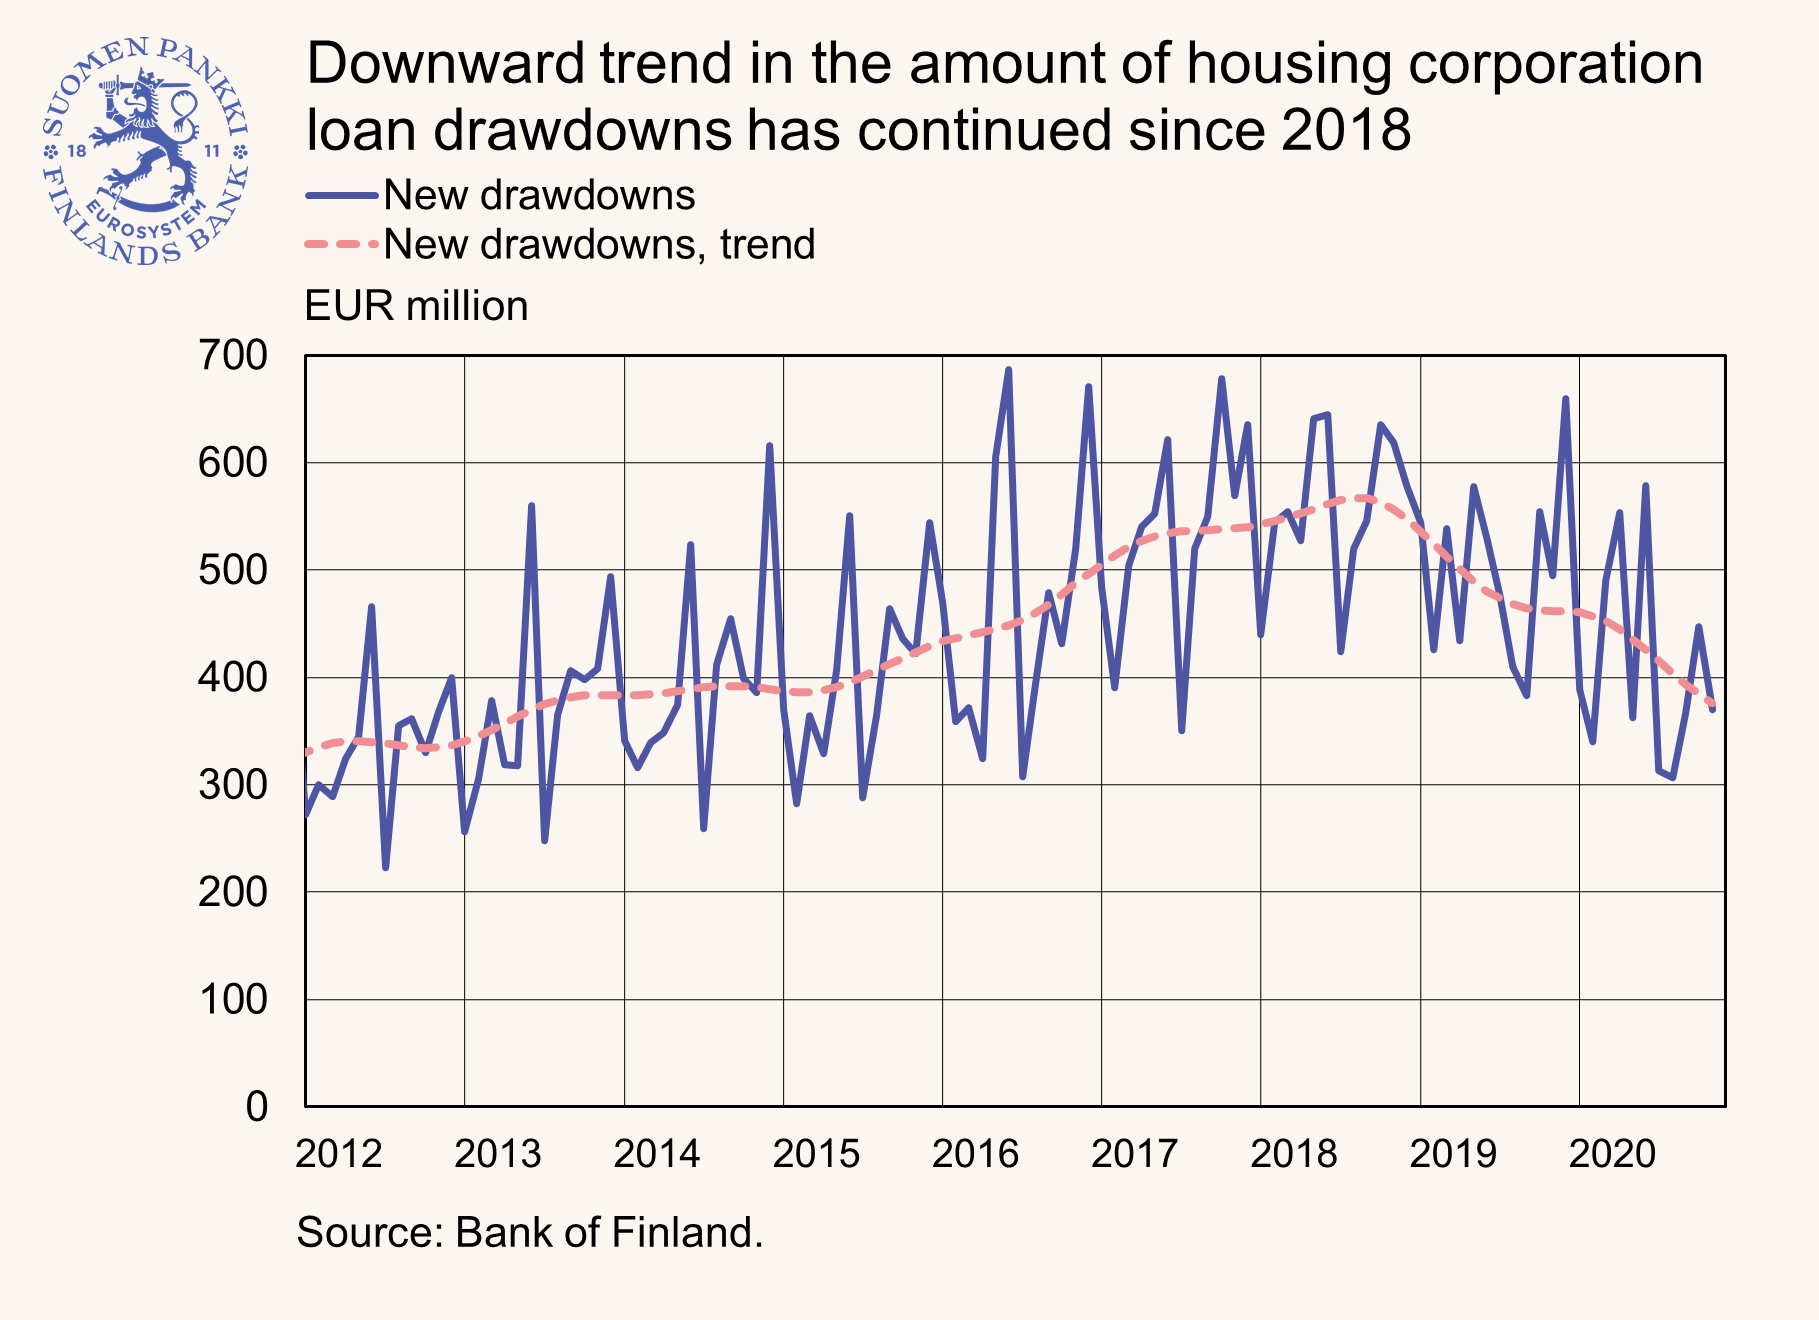 DRAWDOWNS OF LOANS TO HOUSING CORPORATIONS